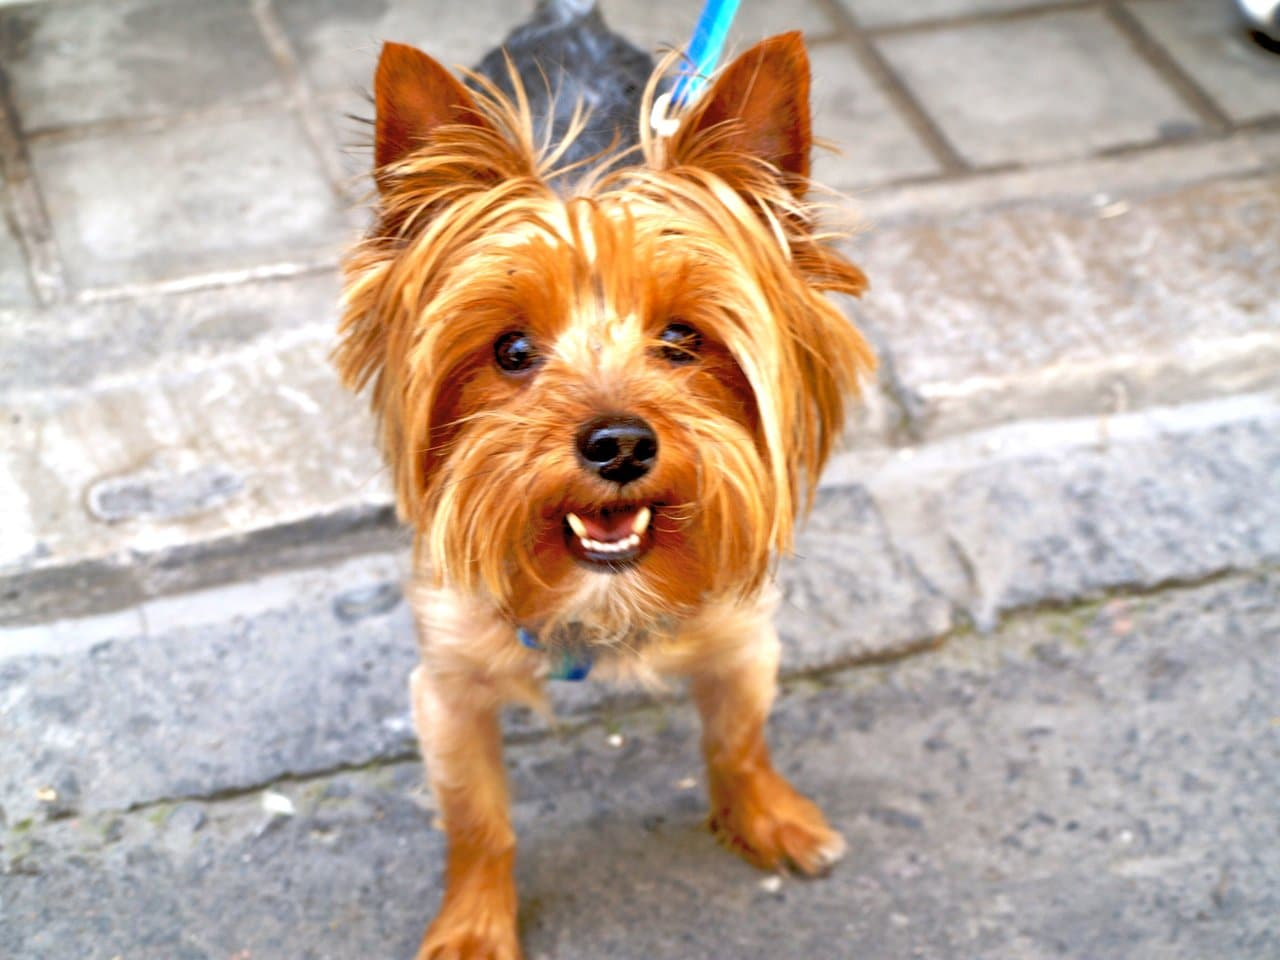 Best Dog Food For Labs >> Best Dog Food For Yorkies - How To Feed Yorkshire Terrier